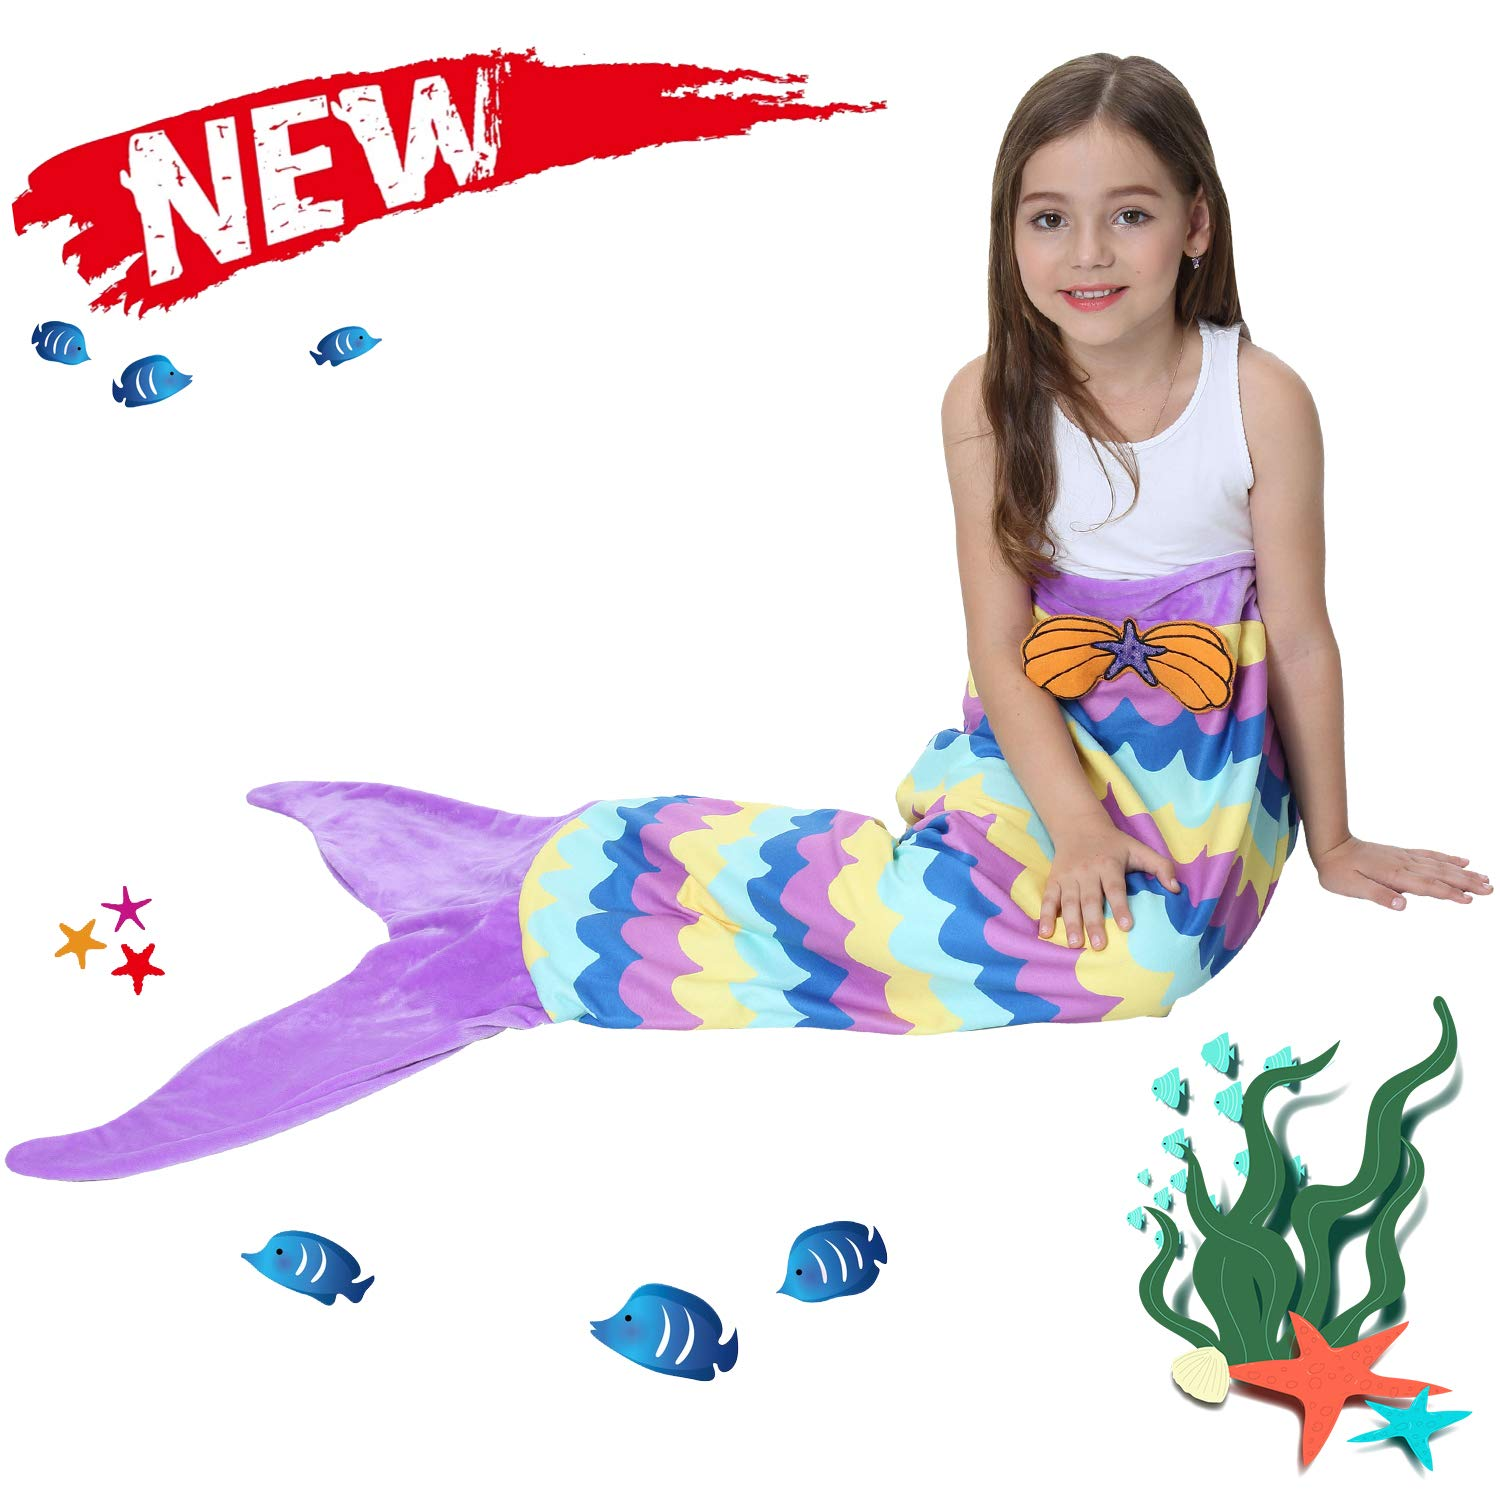 Ereon Mermaid Tail Blanket for Girls Kids Soft Plush Flannel Sleeping Bag to Keep Warm All Seasons Blanket for Girl Christmas Birthday Gift Apply to Bedroom Sofa Beach Outdoor(Purple)